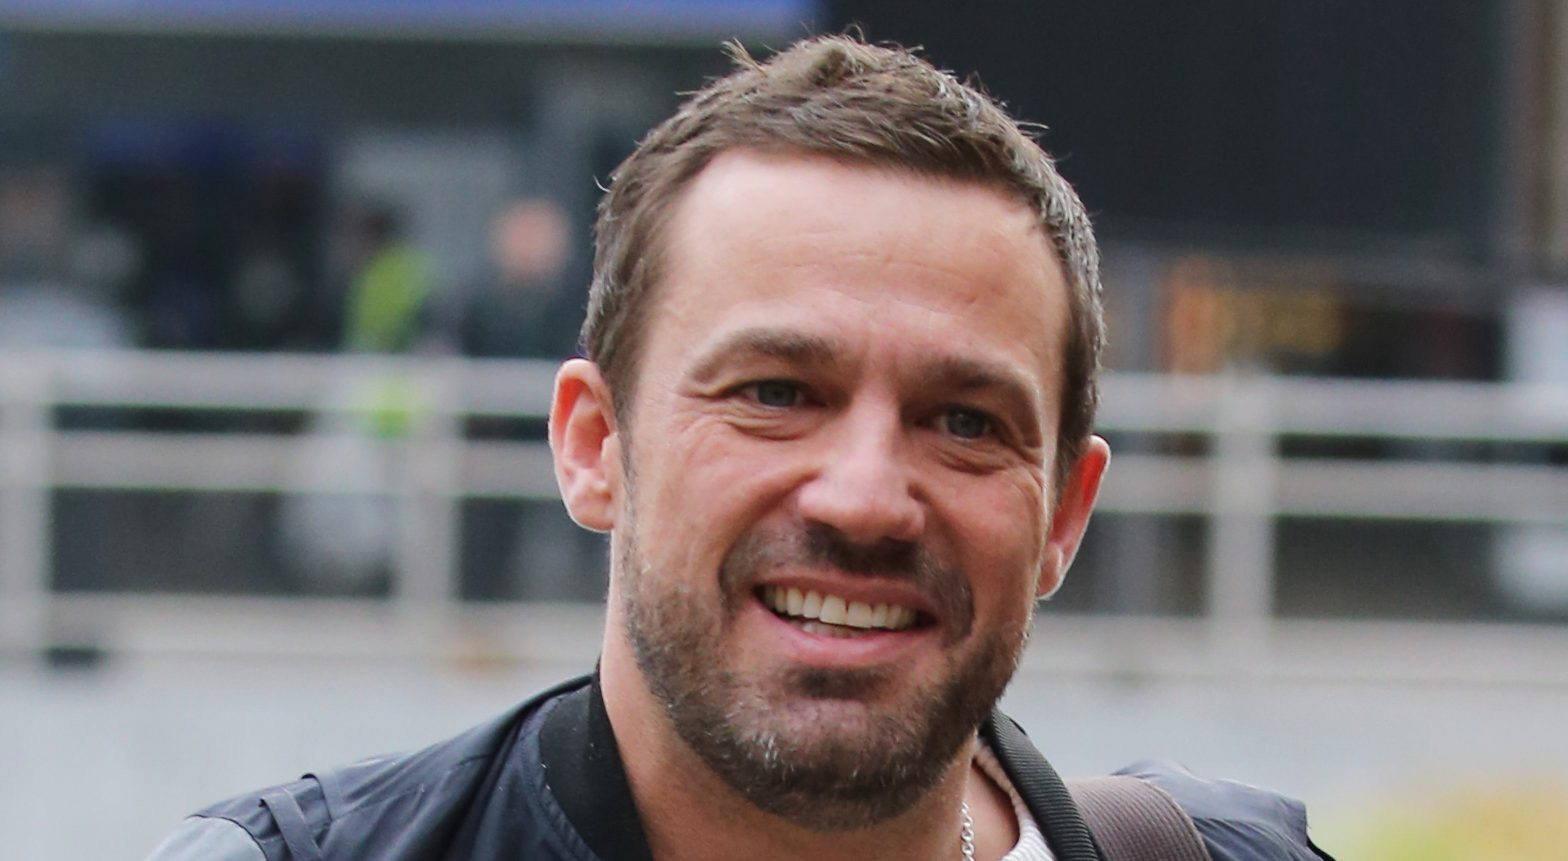 Jamie Lomas confirms he will be staying in Hollyoaks